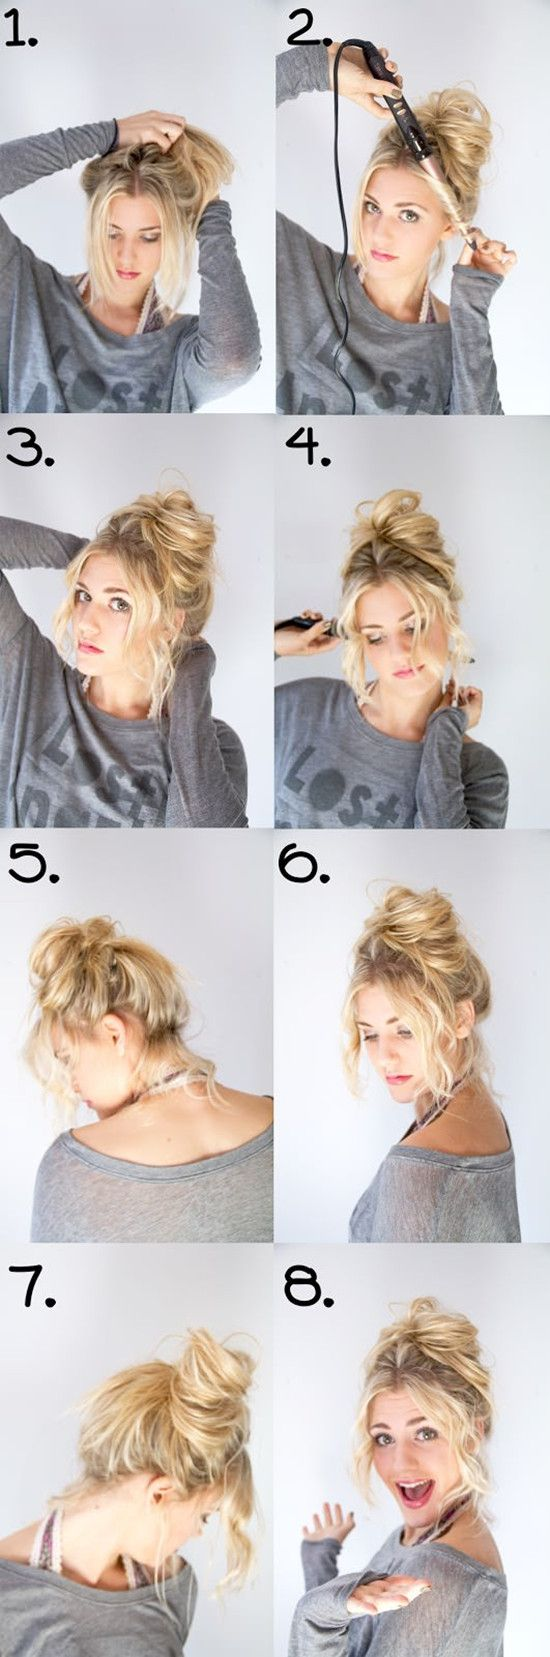 Stupendous 1000 Images About Updo Hairstyles On Pinterest Cheap Hair Short Hairstyles For Black Women Fulllsitofus